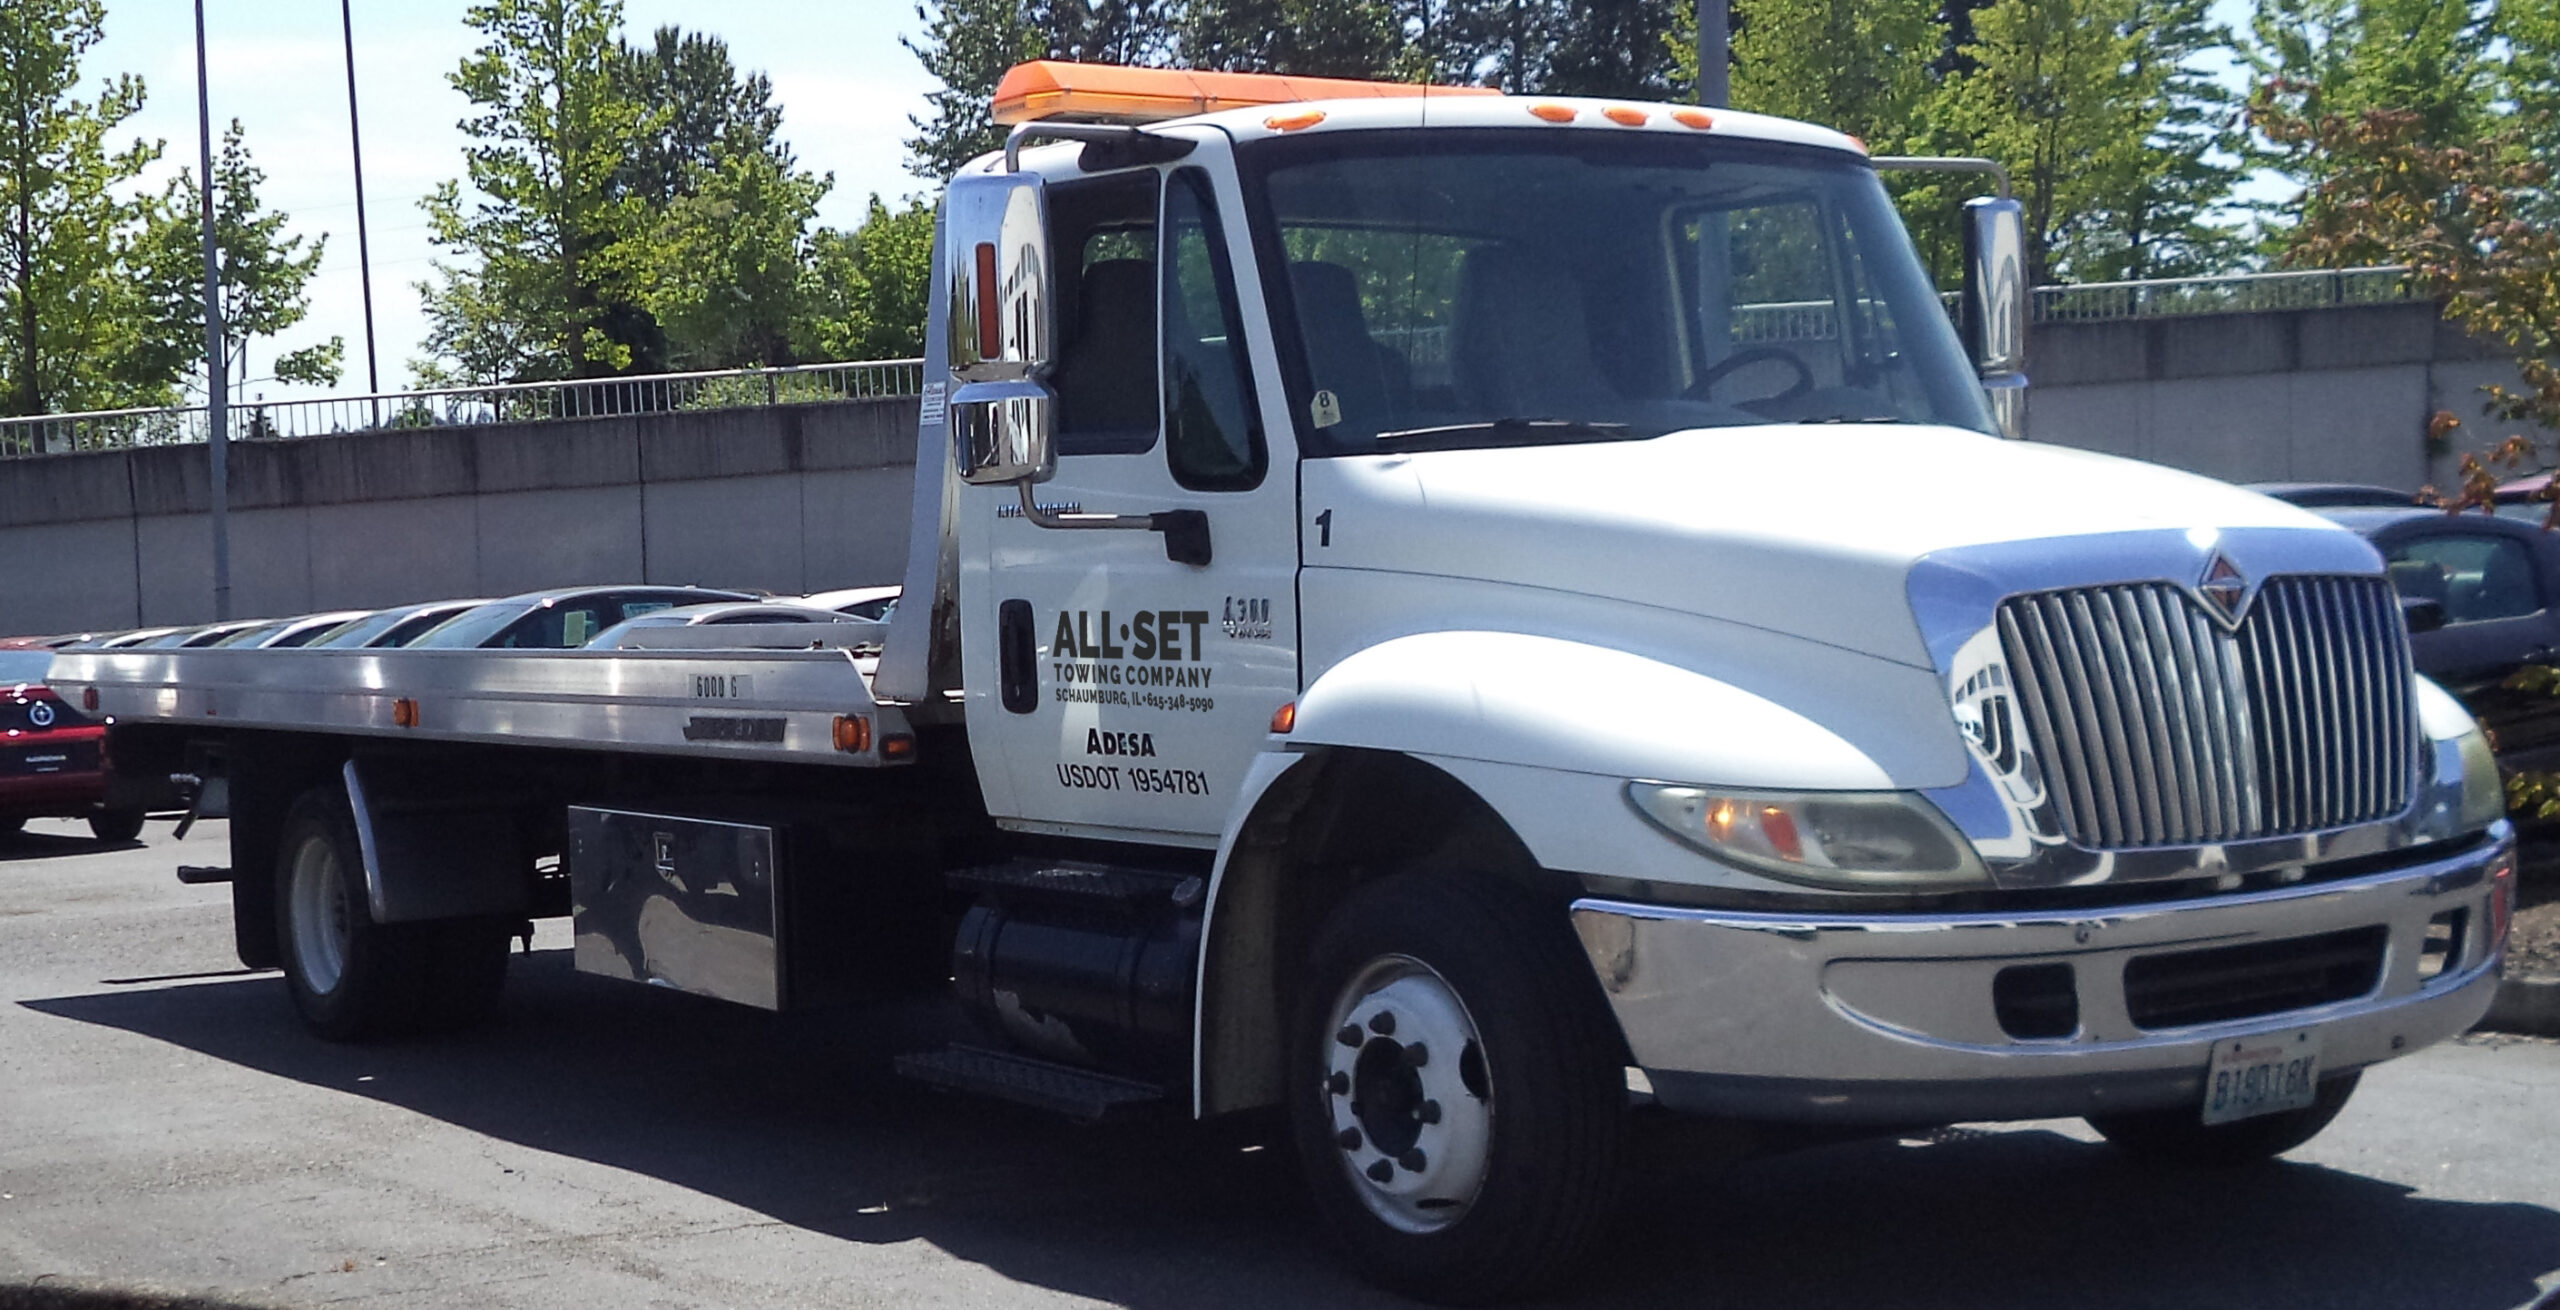 All Set Towing Company Flat Bed Tow Truck Schaumburg IL - Color